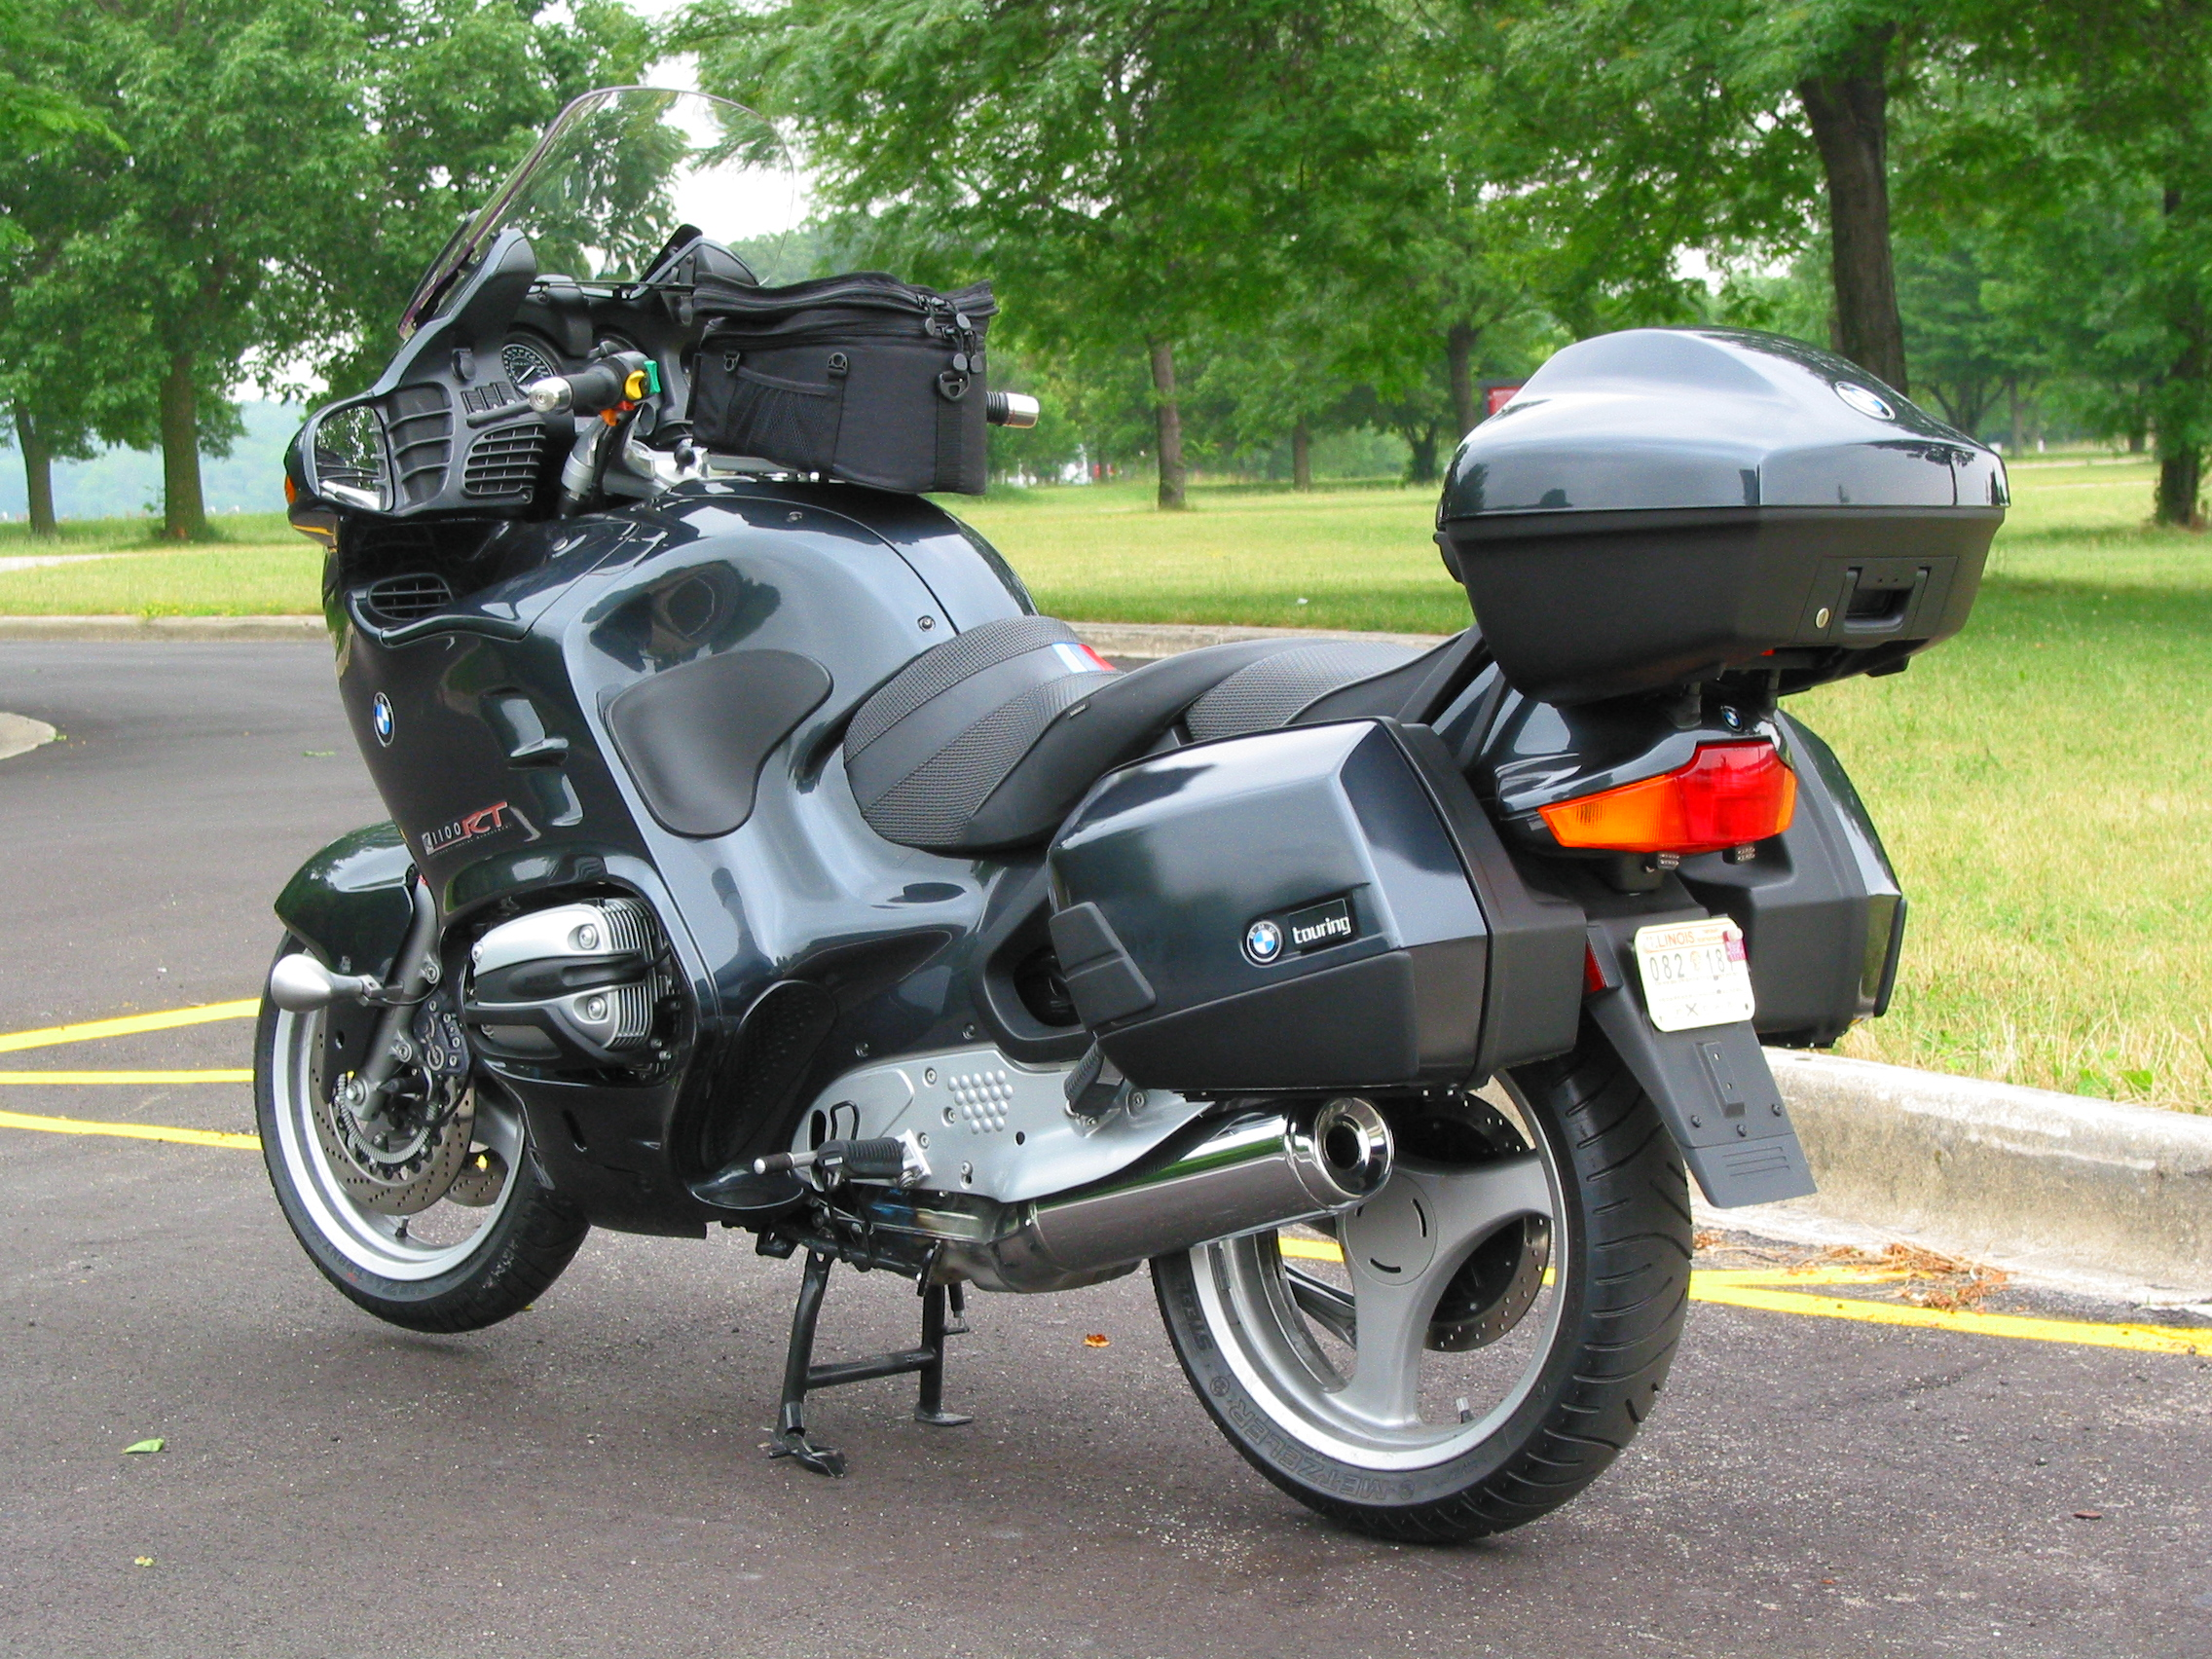 BMW R1100RT images #6648